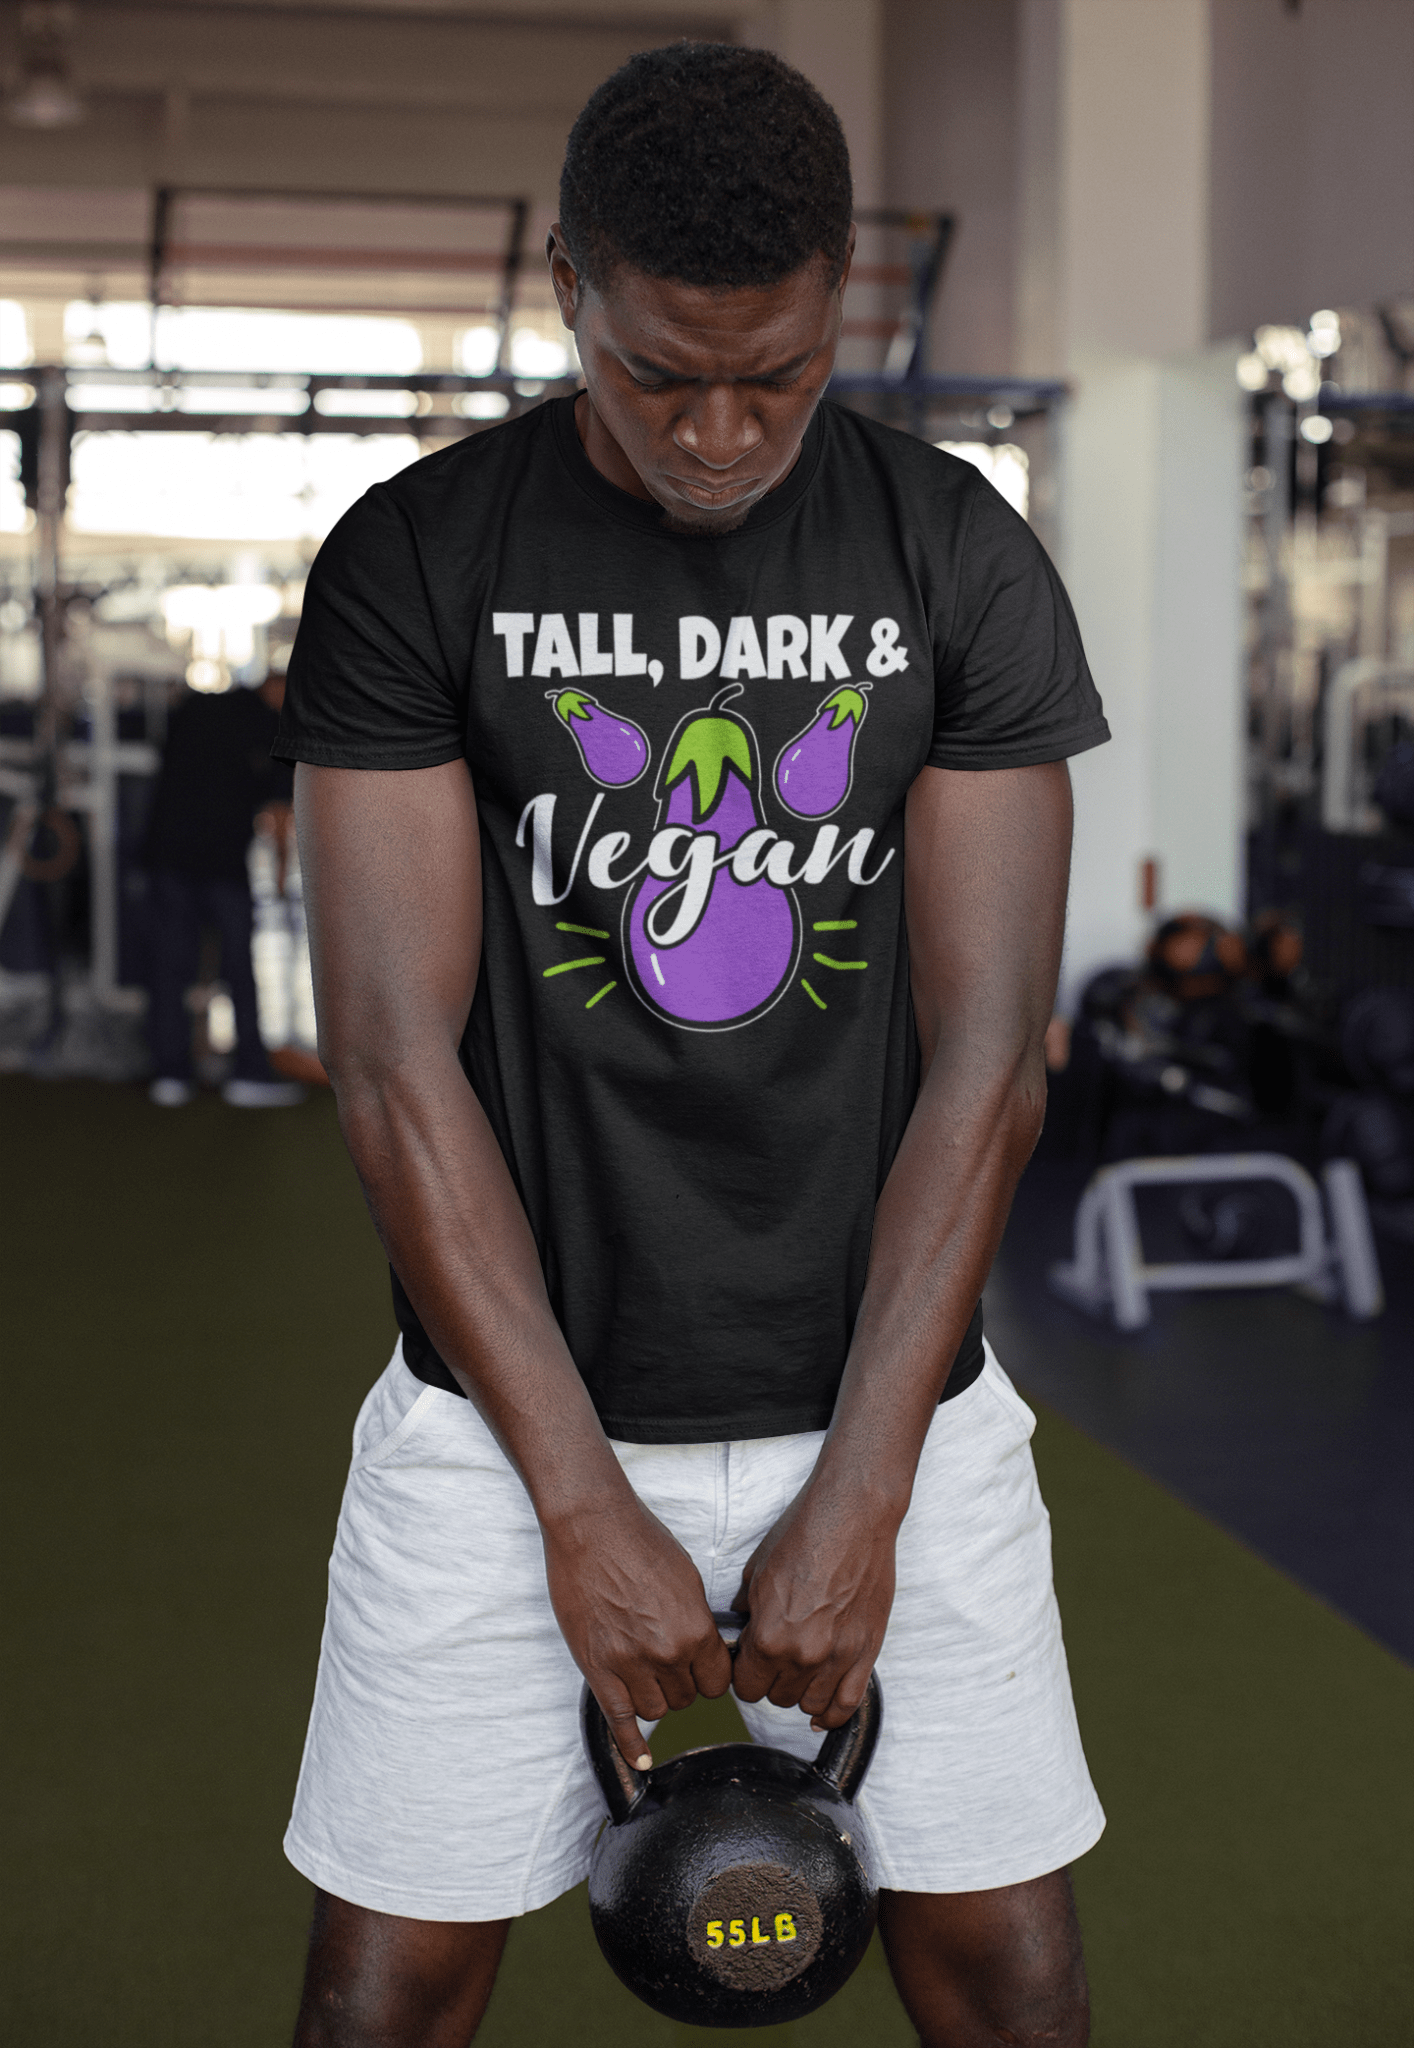 round-neck-tee-mockup-of-a-strong-man-holding-a-kettlebell-at-the-gym-23641